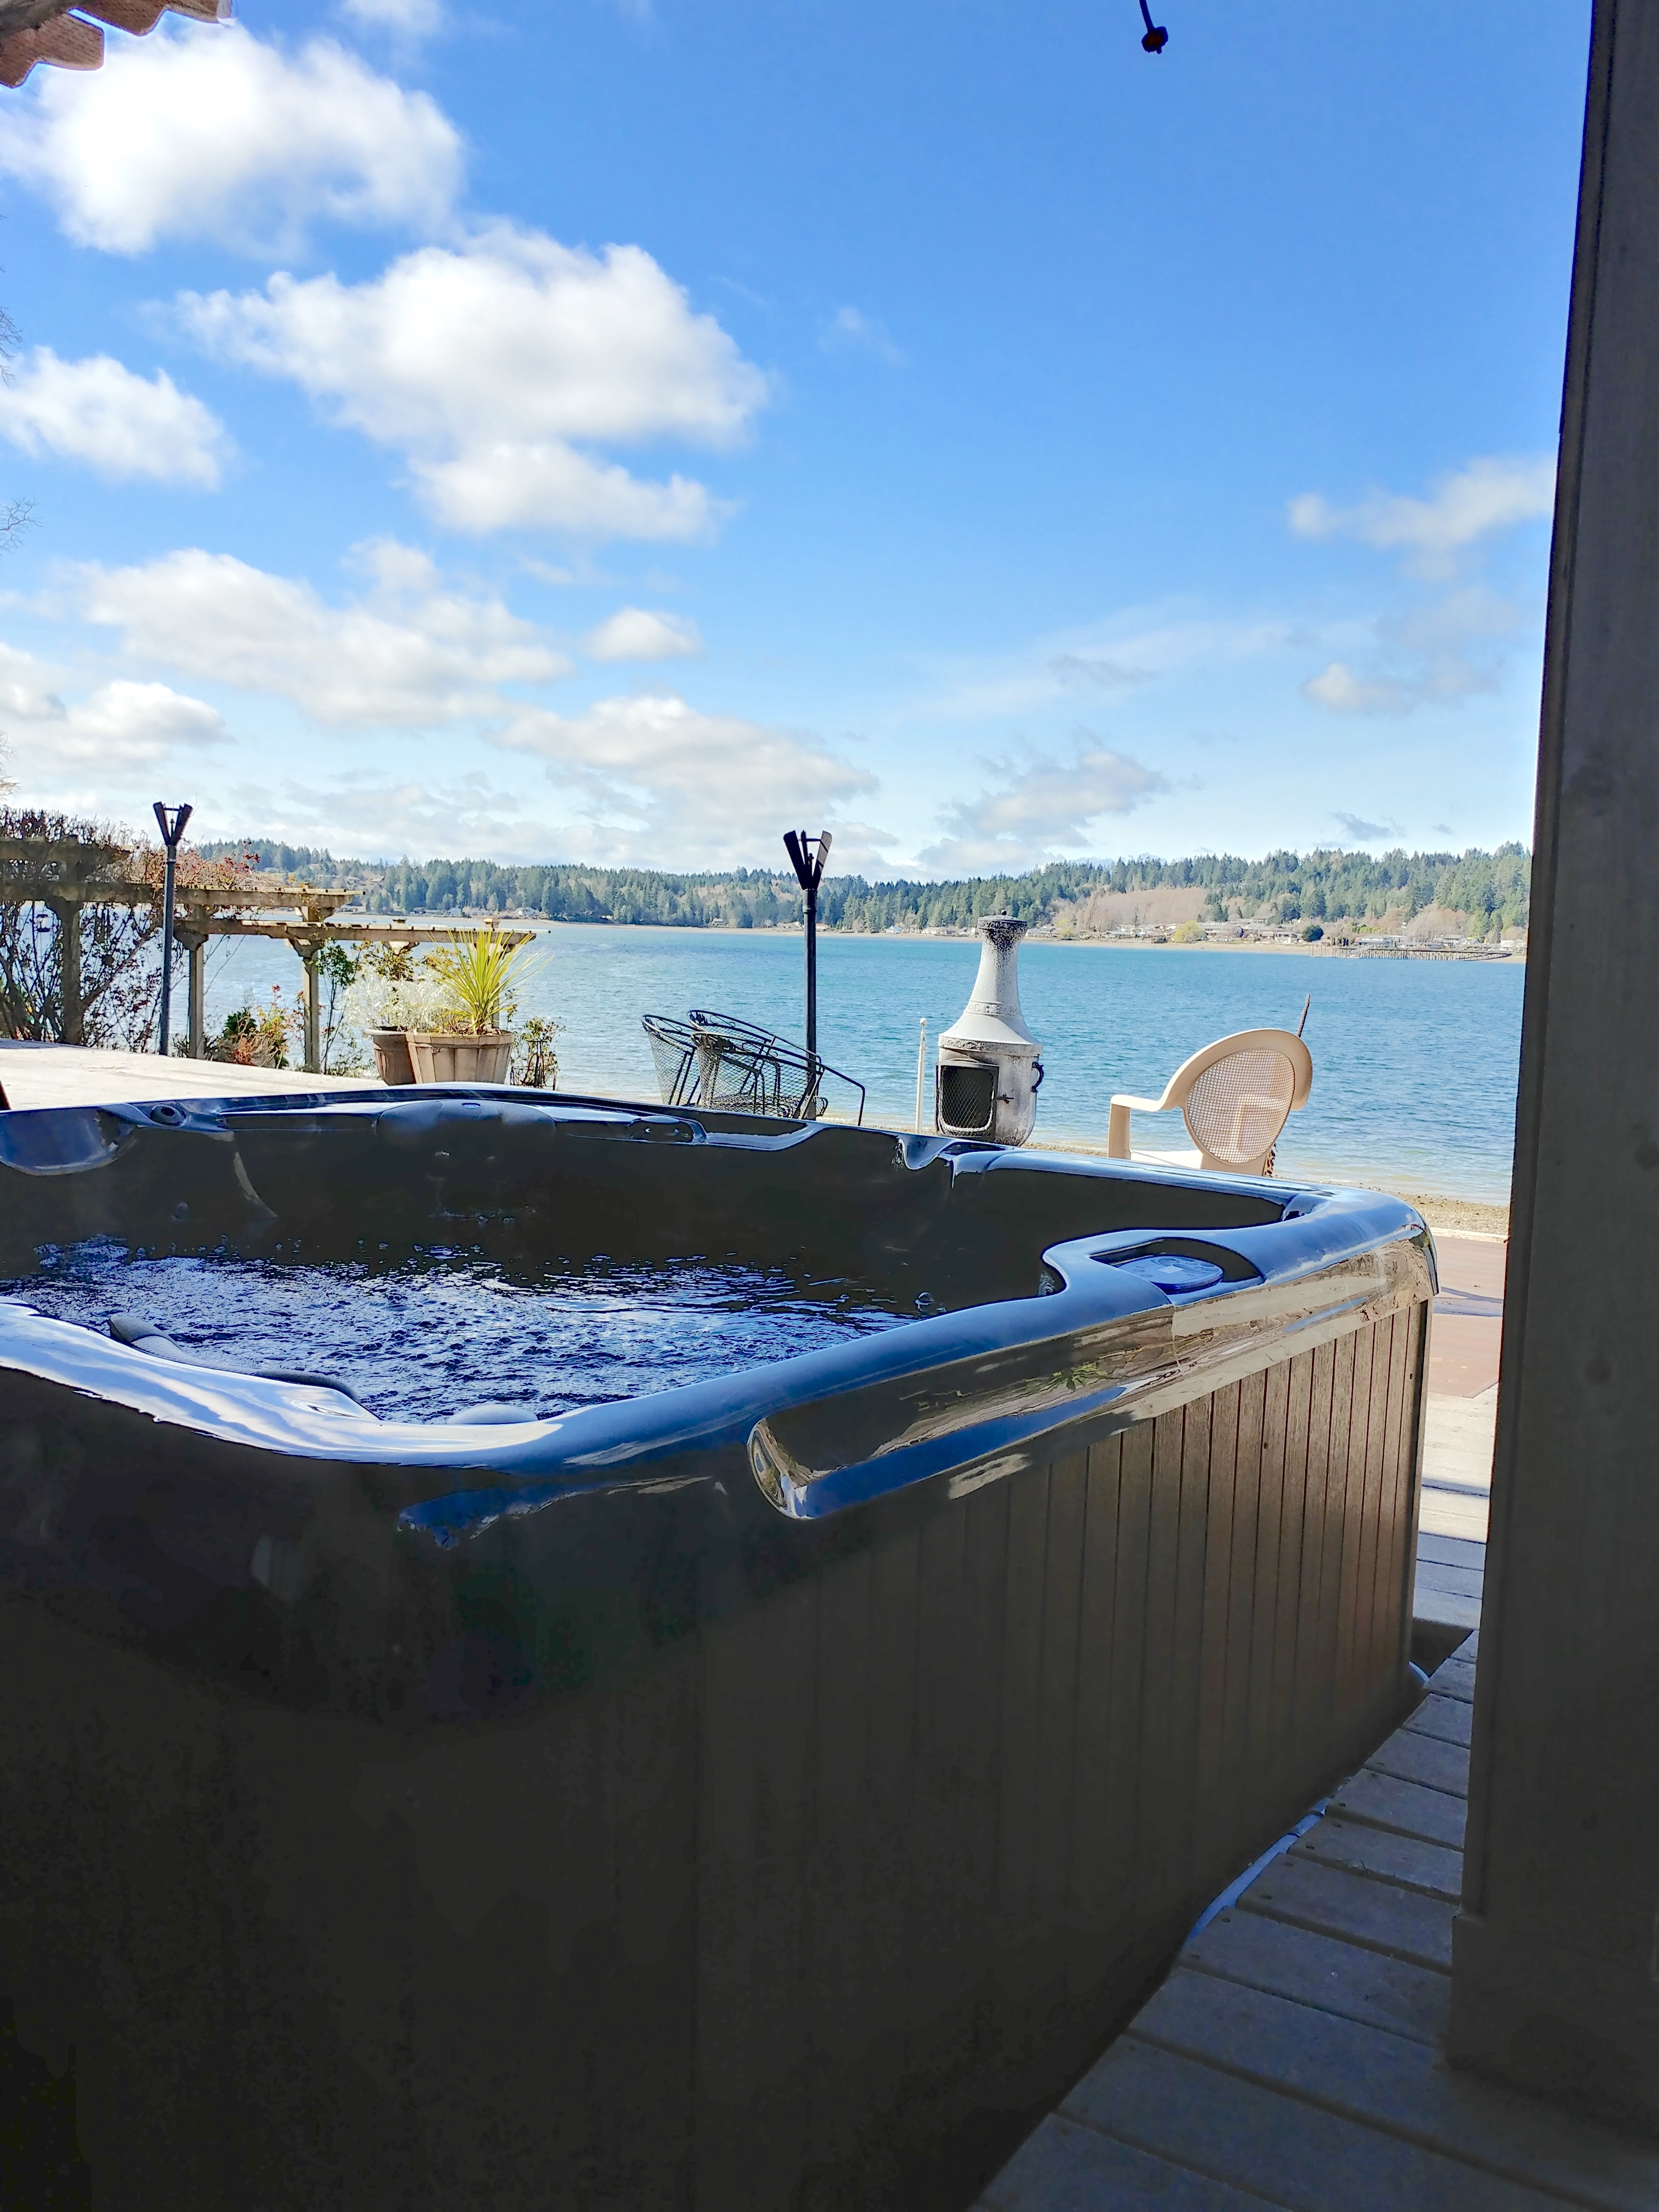 5 Things You Should Never Do to Your Hot Tub